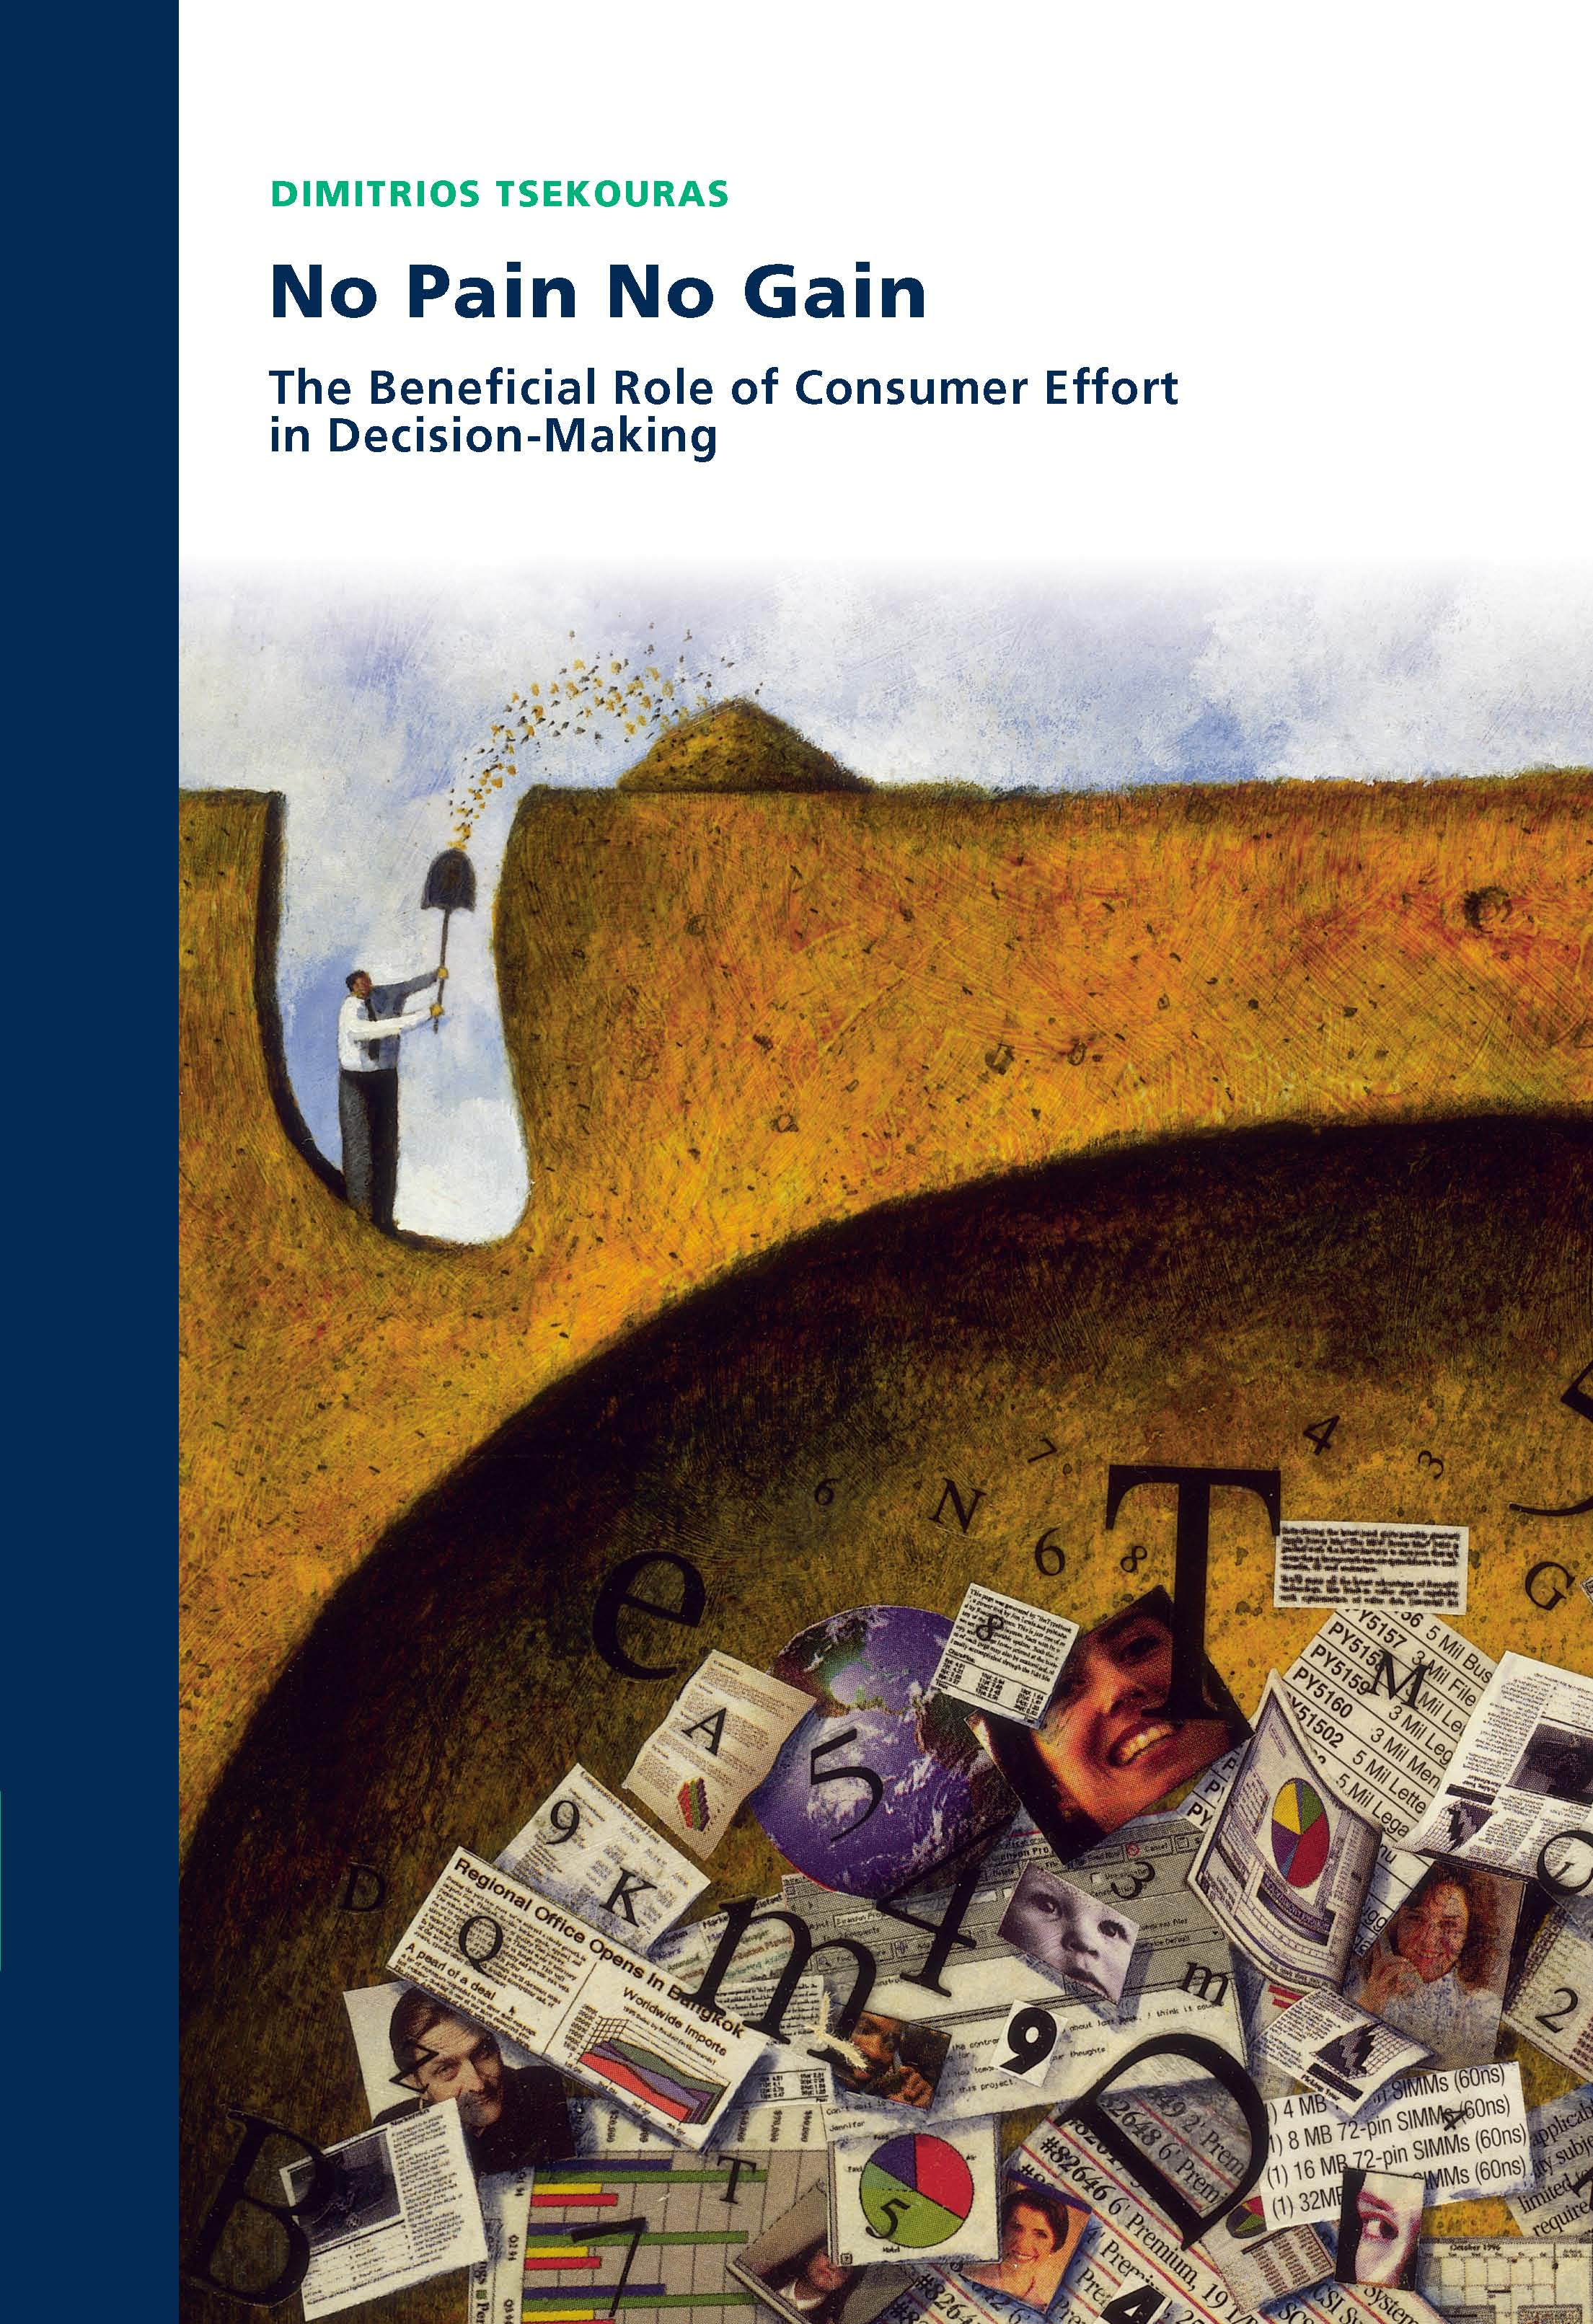 No Pain No Gain: The Beneficial Role of Consumer Effort in Decision-Making